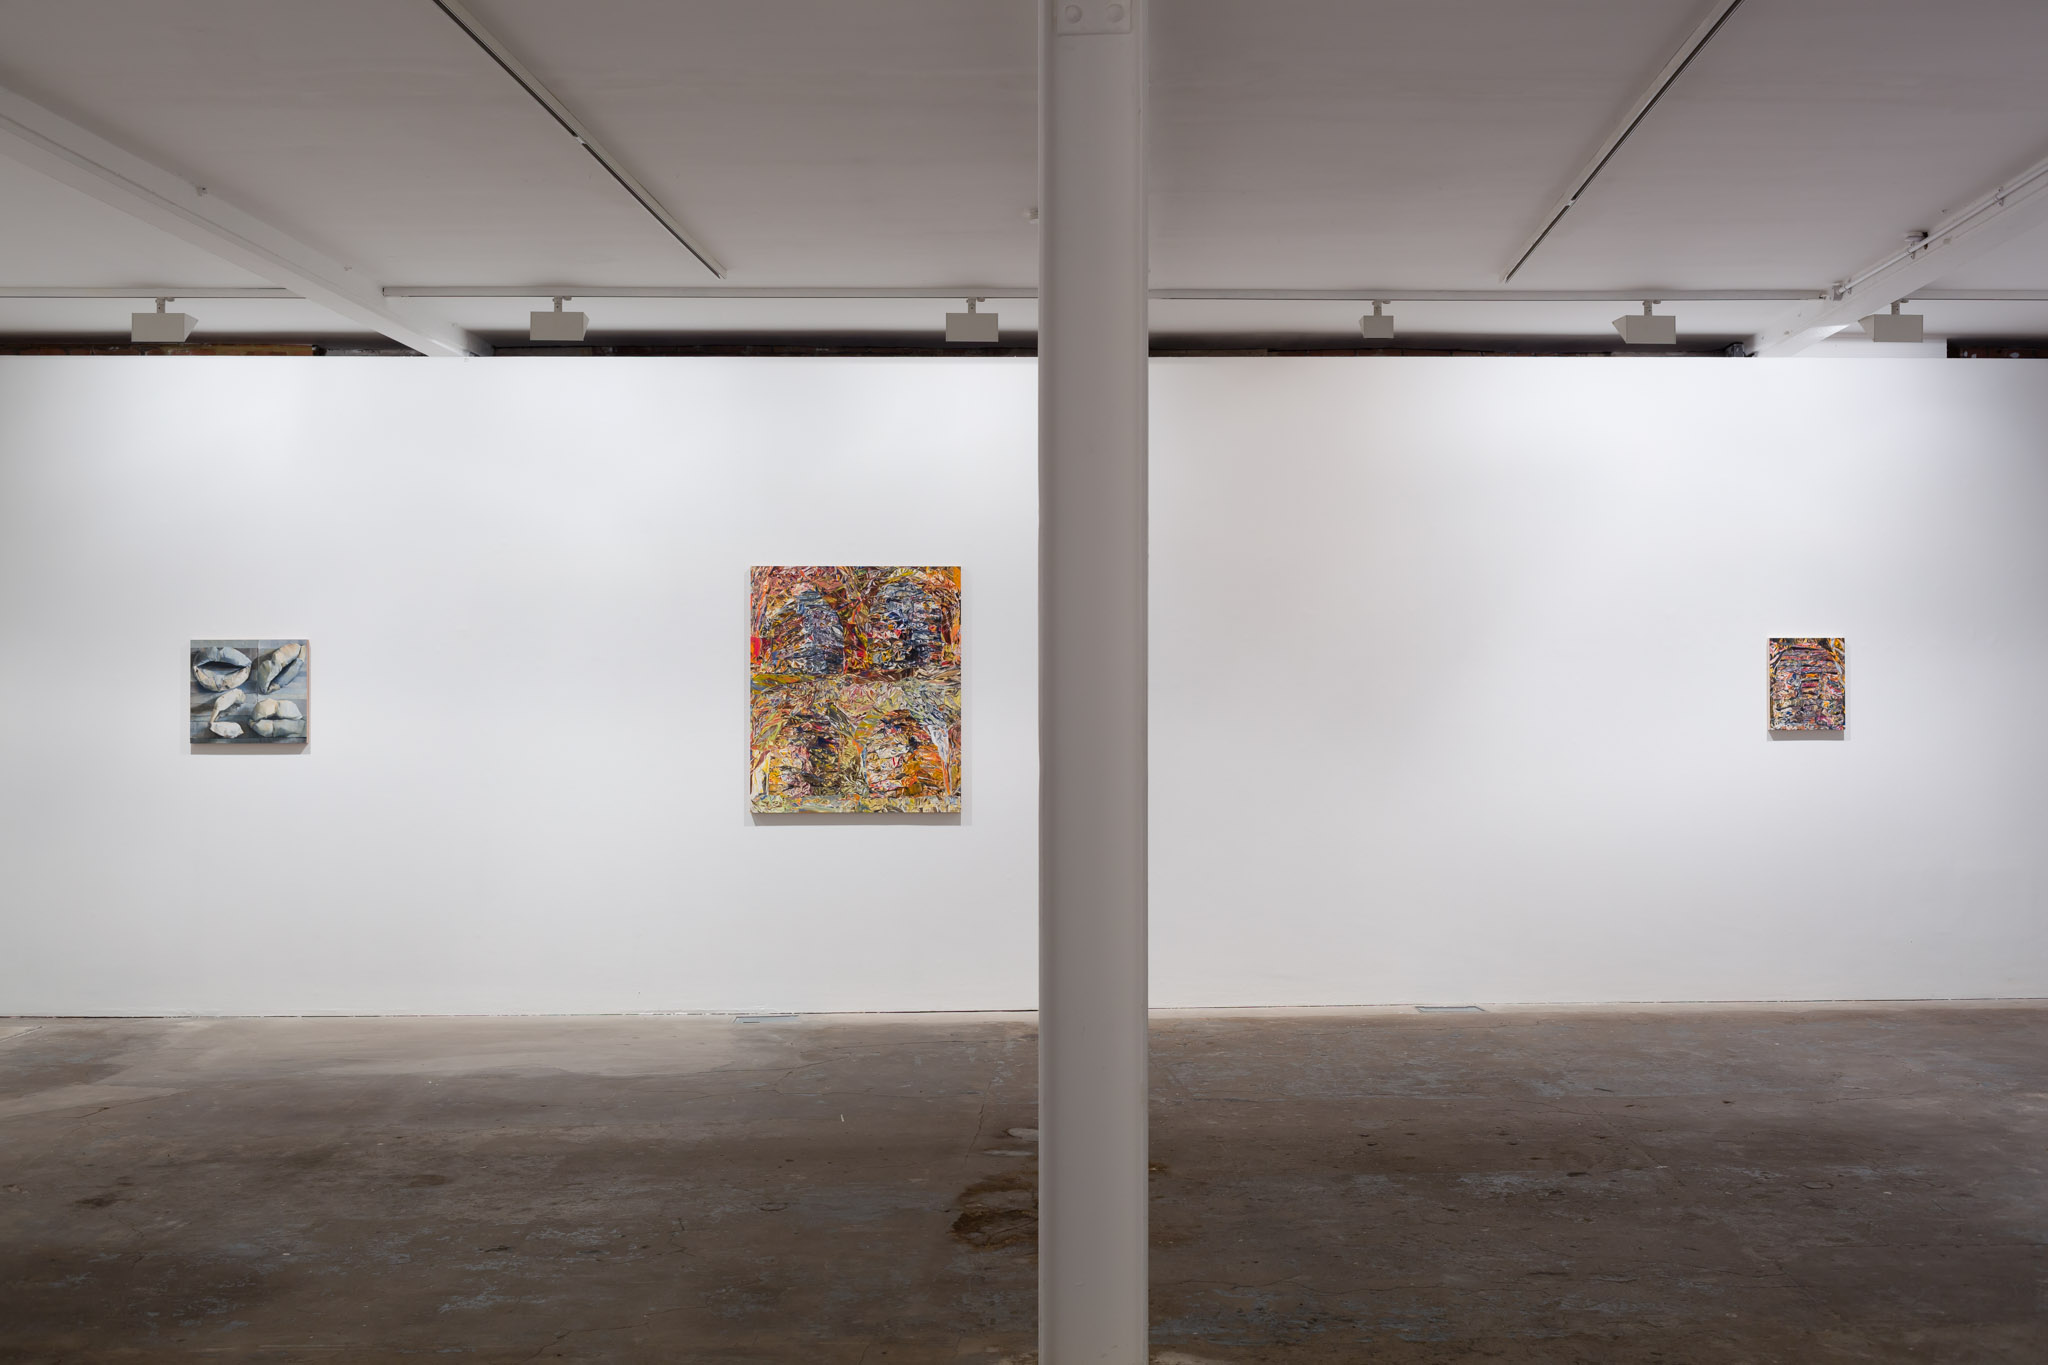 William Daniels, 2014, Vilma Gold, London, Installation View. William Daniels